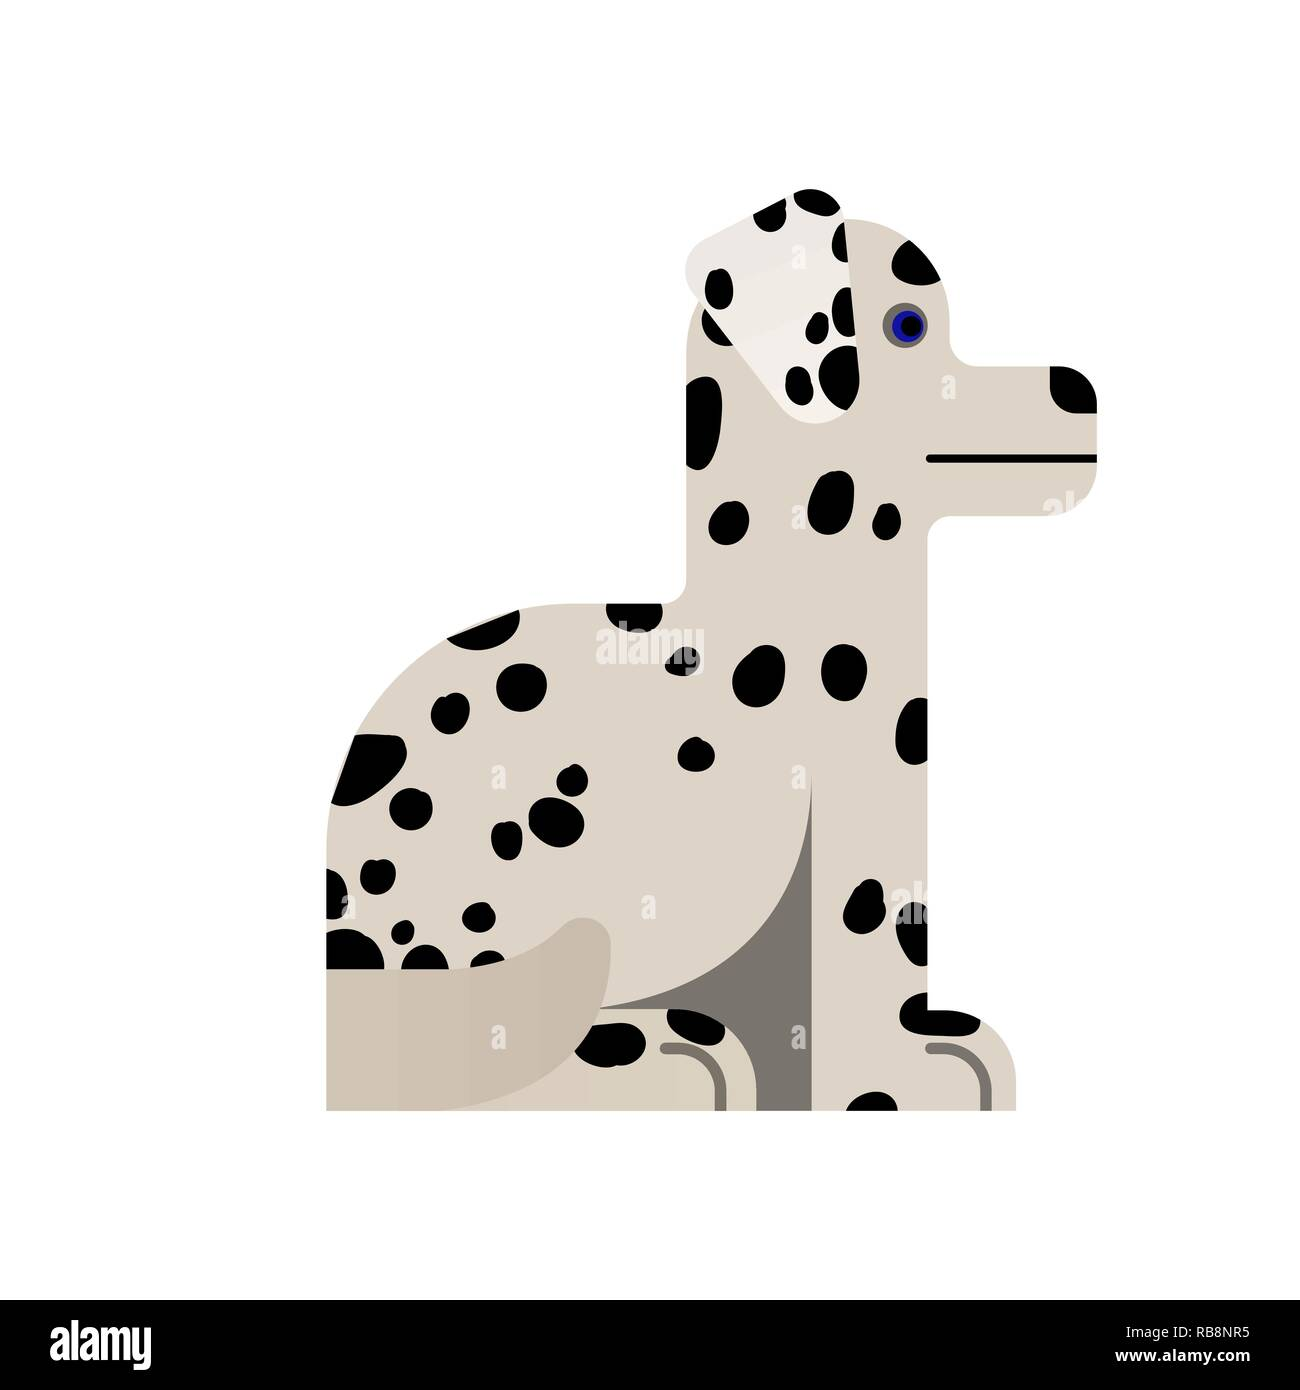 Dalmatian sits. Thoroughbred dog. Vector illustration Flat icon - Stock Vector